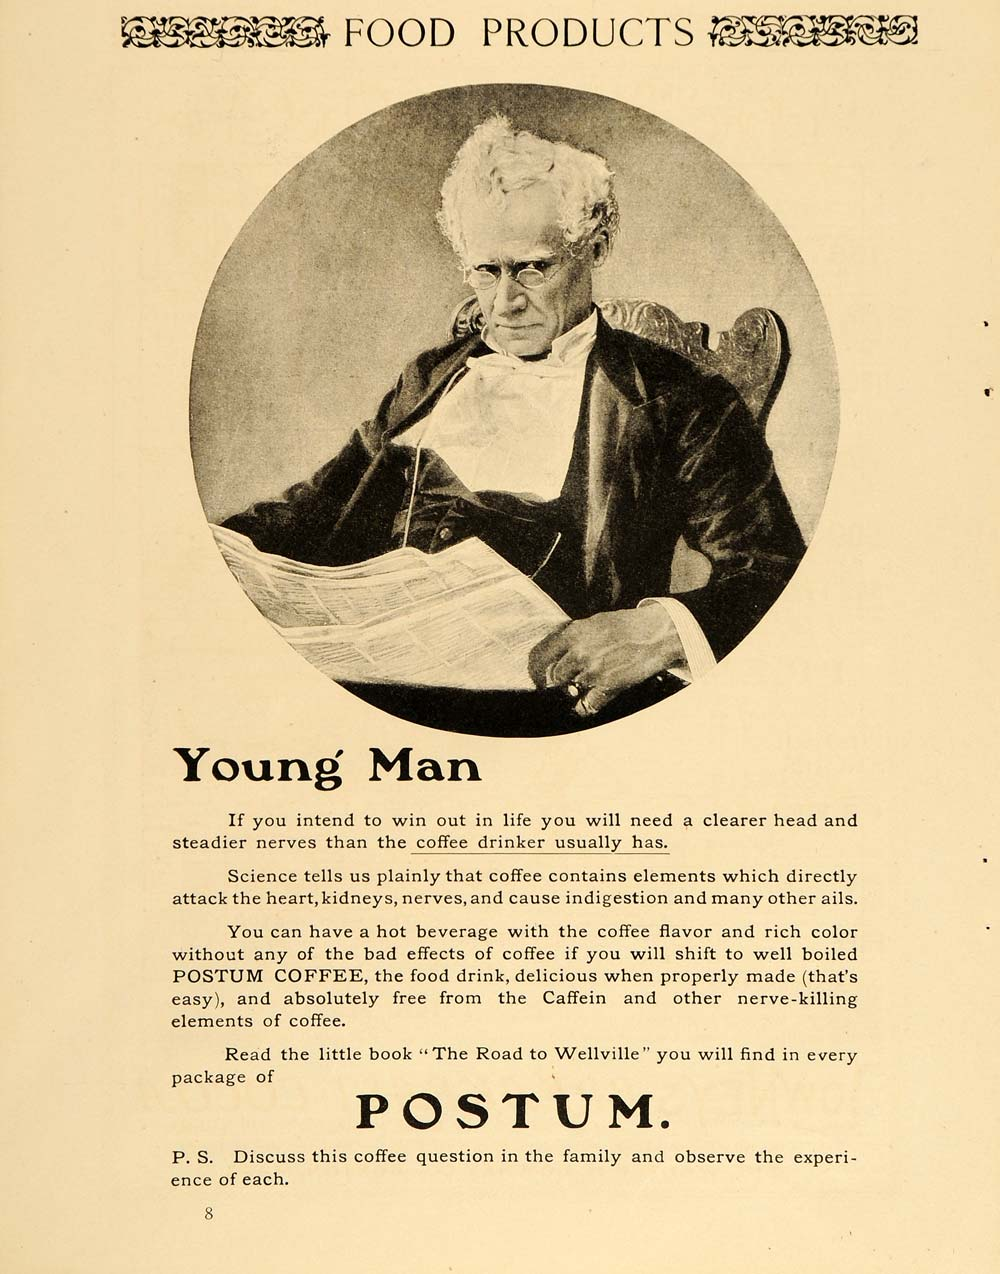 1904 Vintage Ad Postum Coffee Substitute Caffeine Free - ORIGINAL ADVERTISING